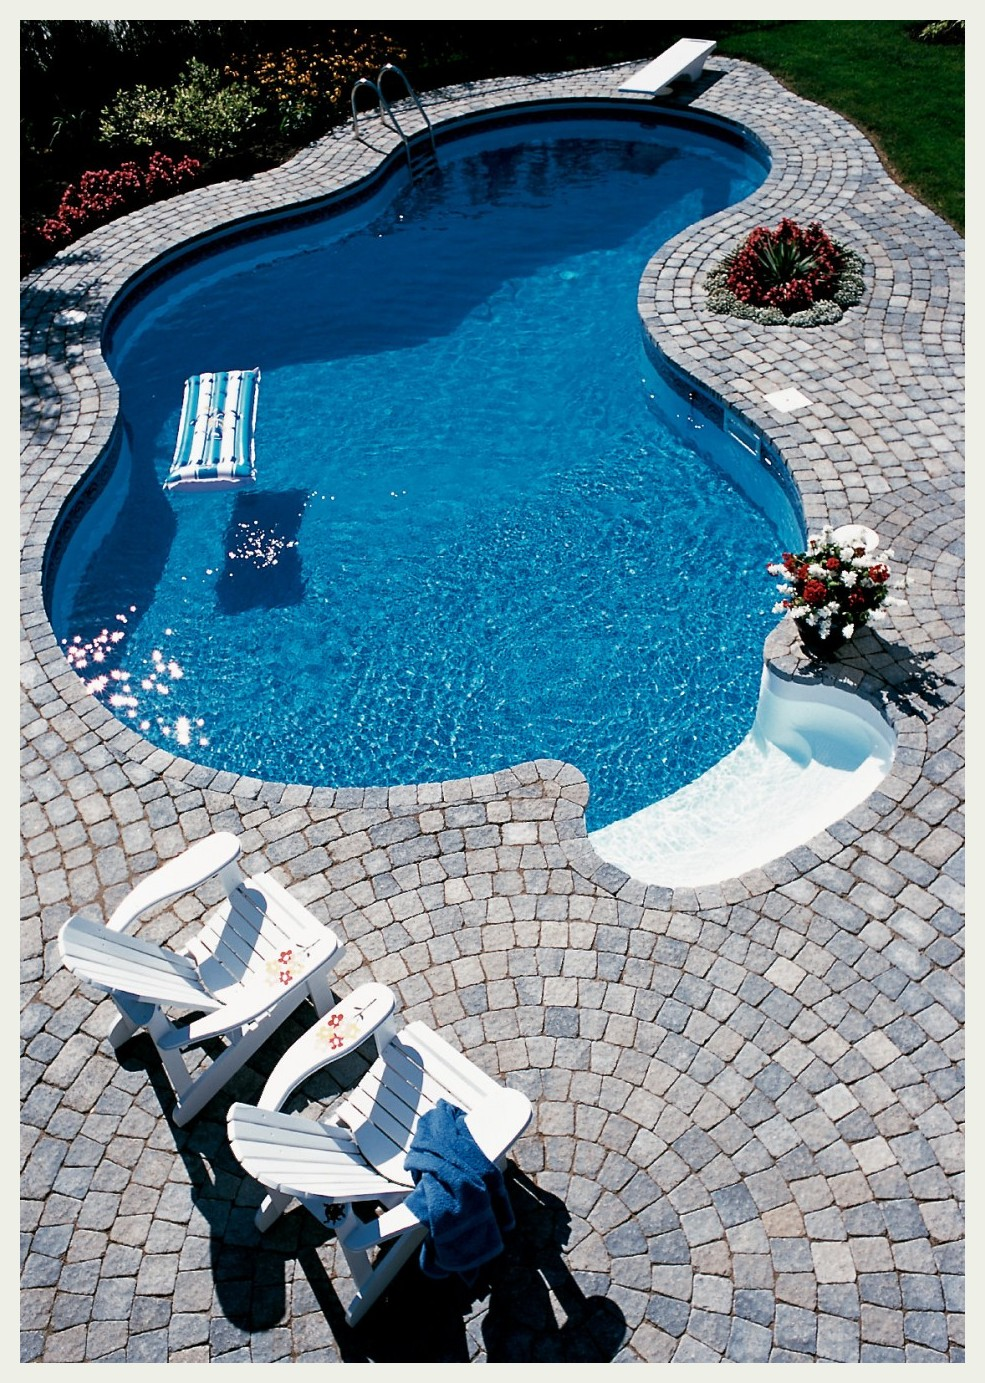 Swimming pool design 4 homeadviceguide for Pool design 2014